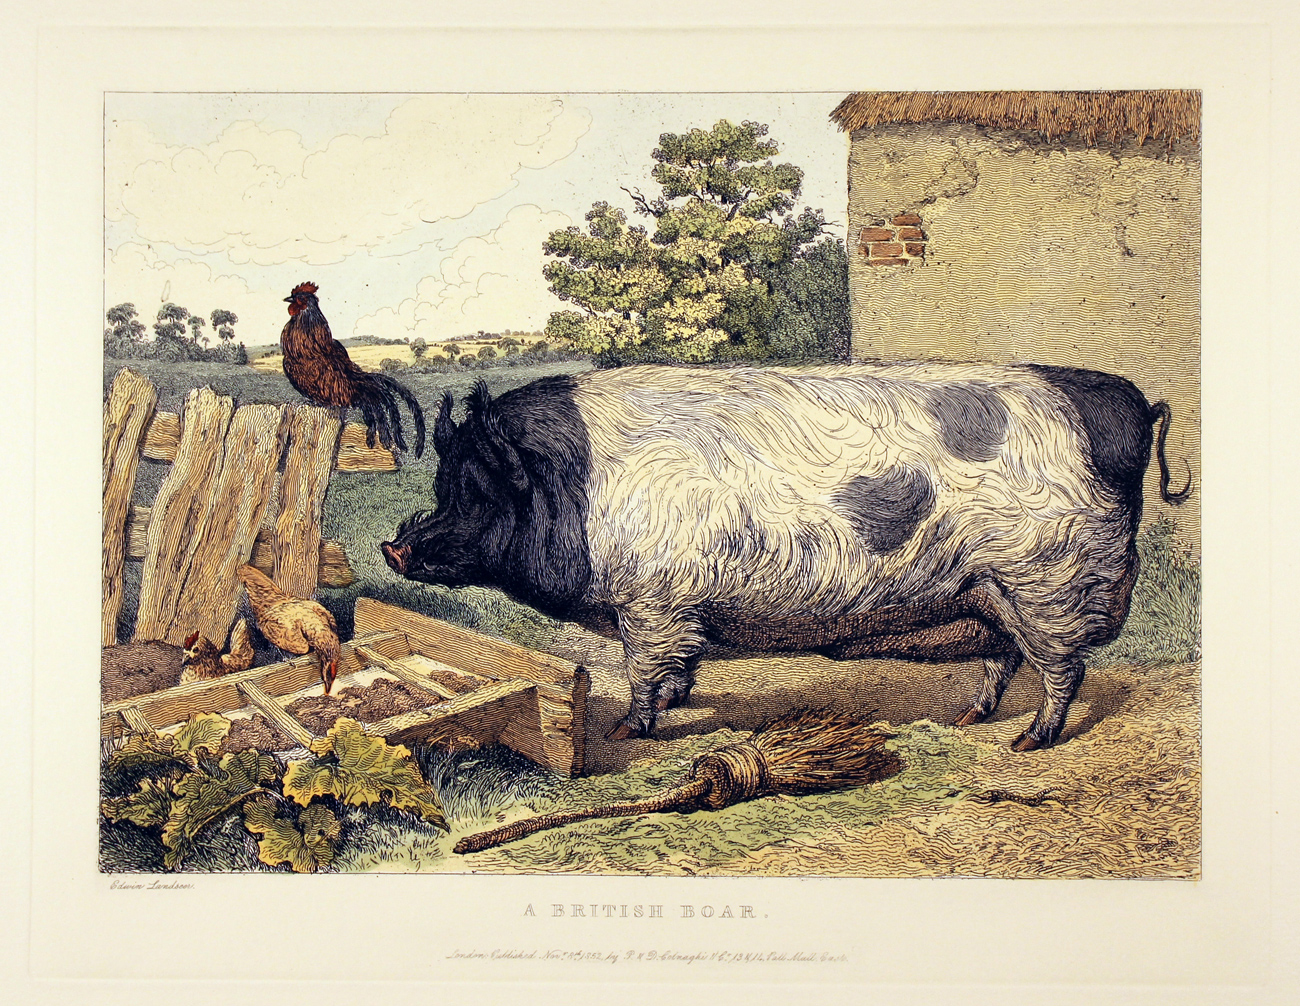 Engraving, Hand coloured restrike engraving, British Boar. Click to enlarge